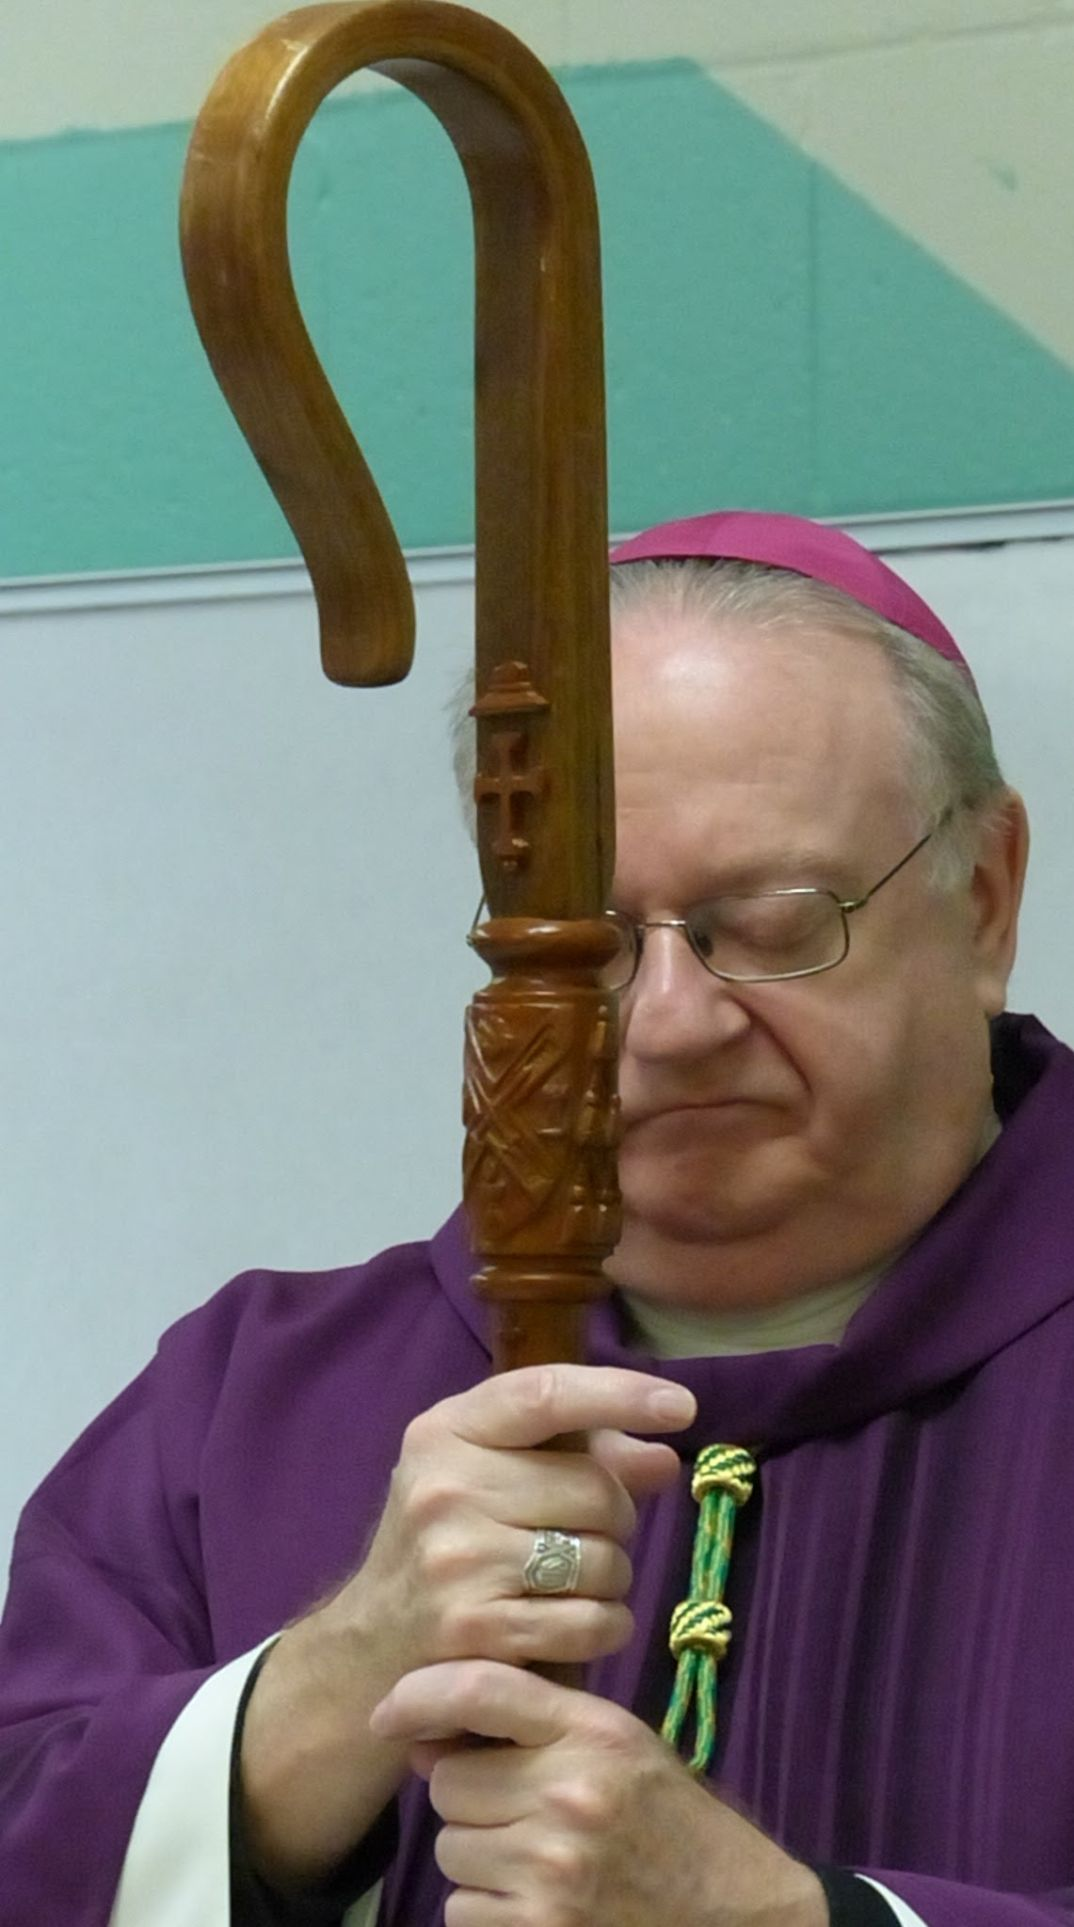 Bishop Celebrates Mass For County Jail Inmates | Religion